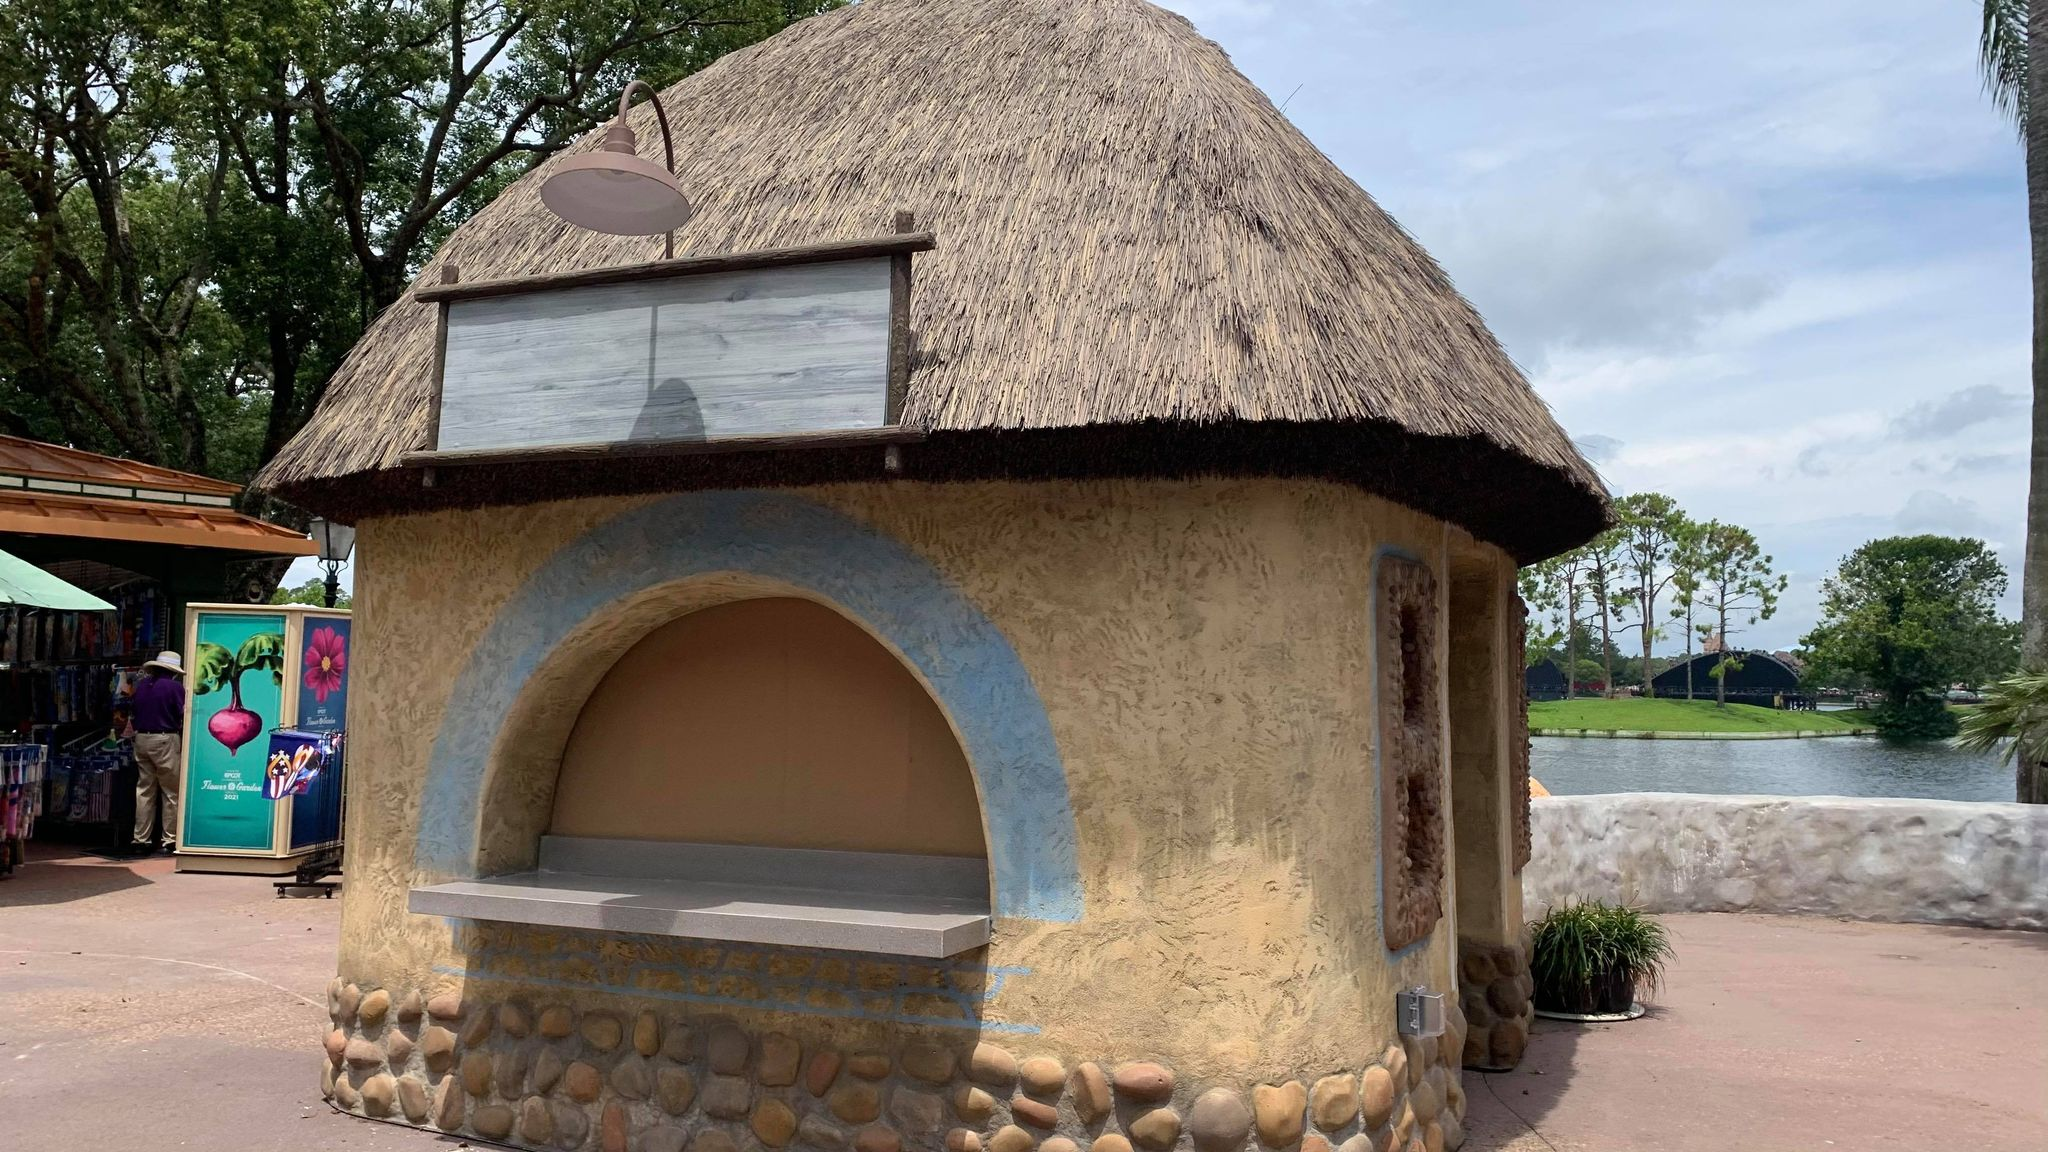 New Food & Wine Festival Booths Now in Epcot 3